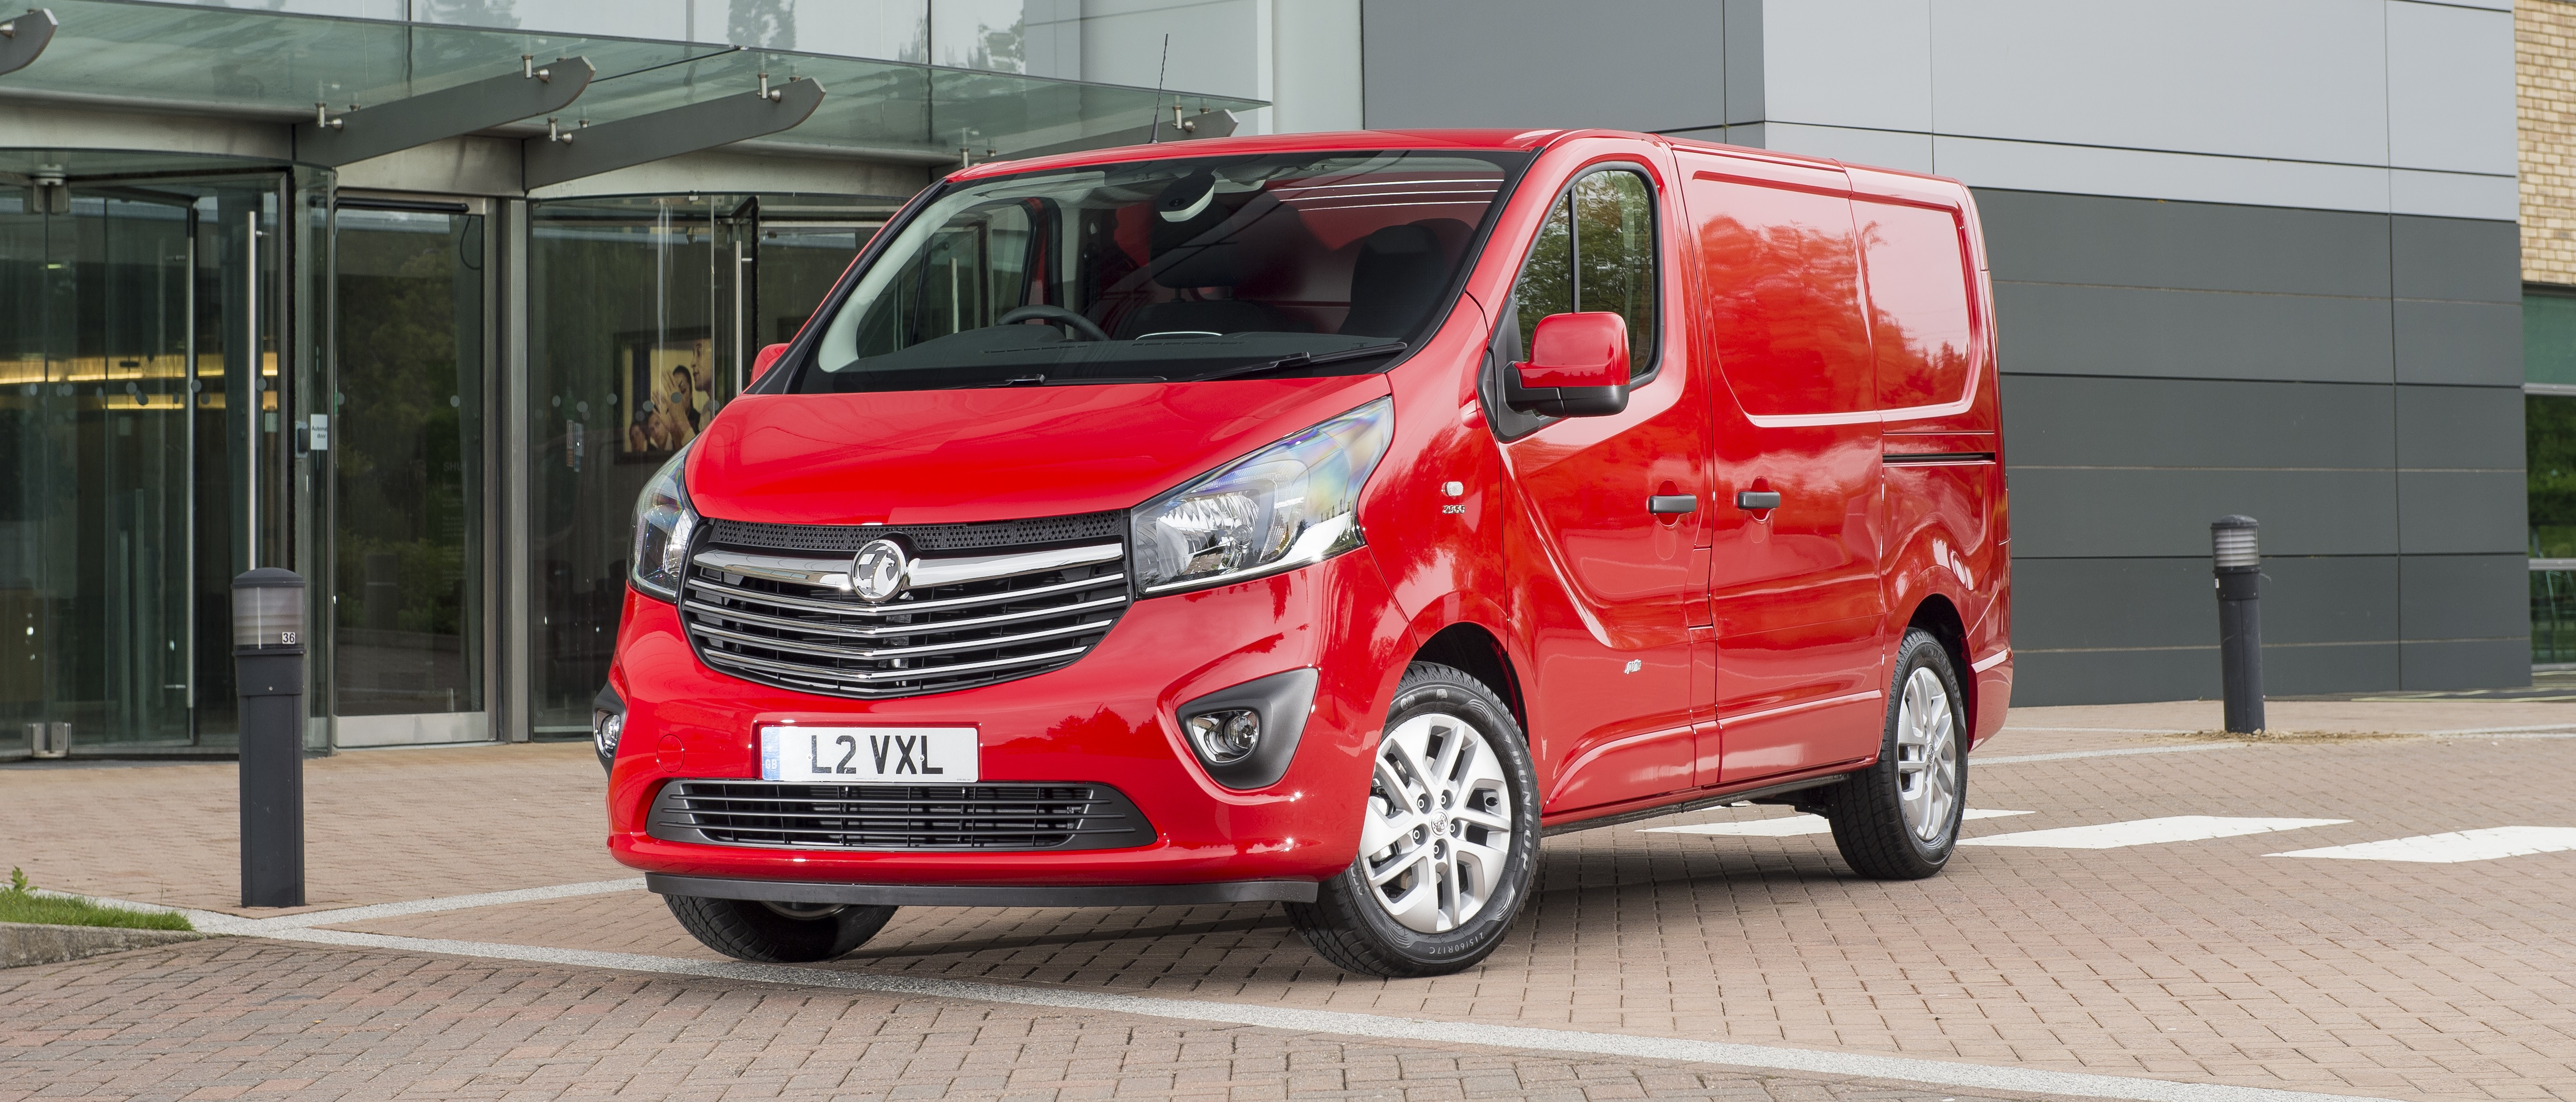 23b1e1eeb3f6ef Discover the range of new and pre-registered Vauxhall vans available from Discount  Van Sales in Newport including the medium-sized Vivaro.